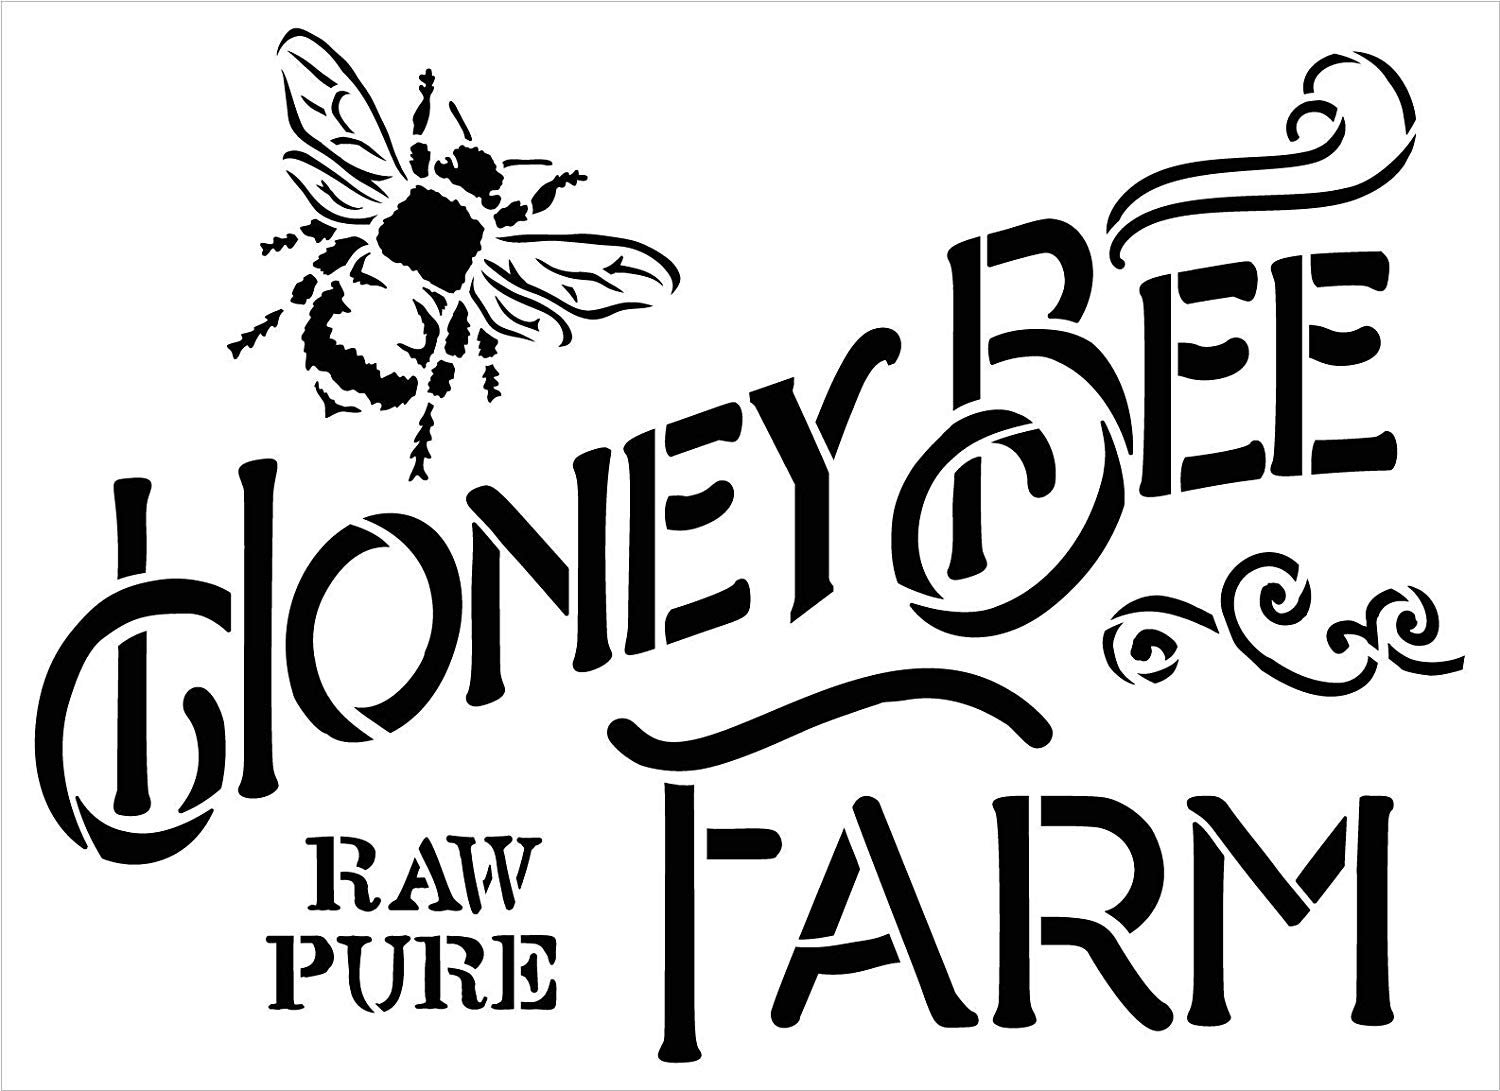 Honey Bee Farm Stencil by StudioR12   DIY Vintage Spring Farmhouse Kitchen Home Decor   Raw & Pure   Craft & Paint Country Rustic Wood Signs   Reusable Mylar Template   Select Size